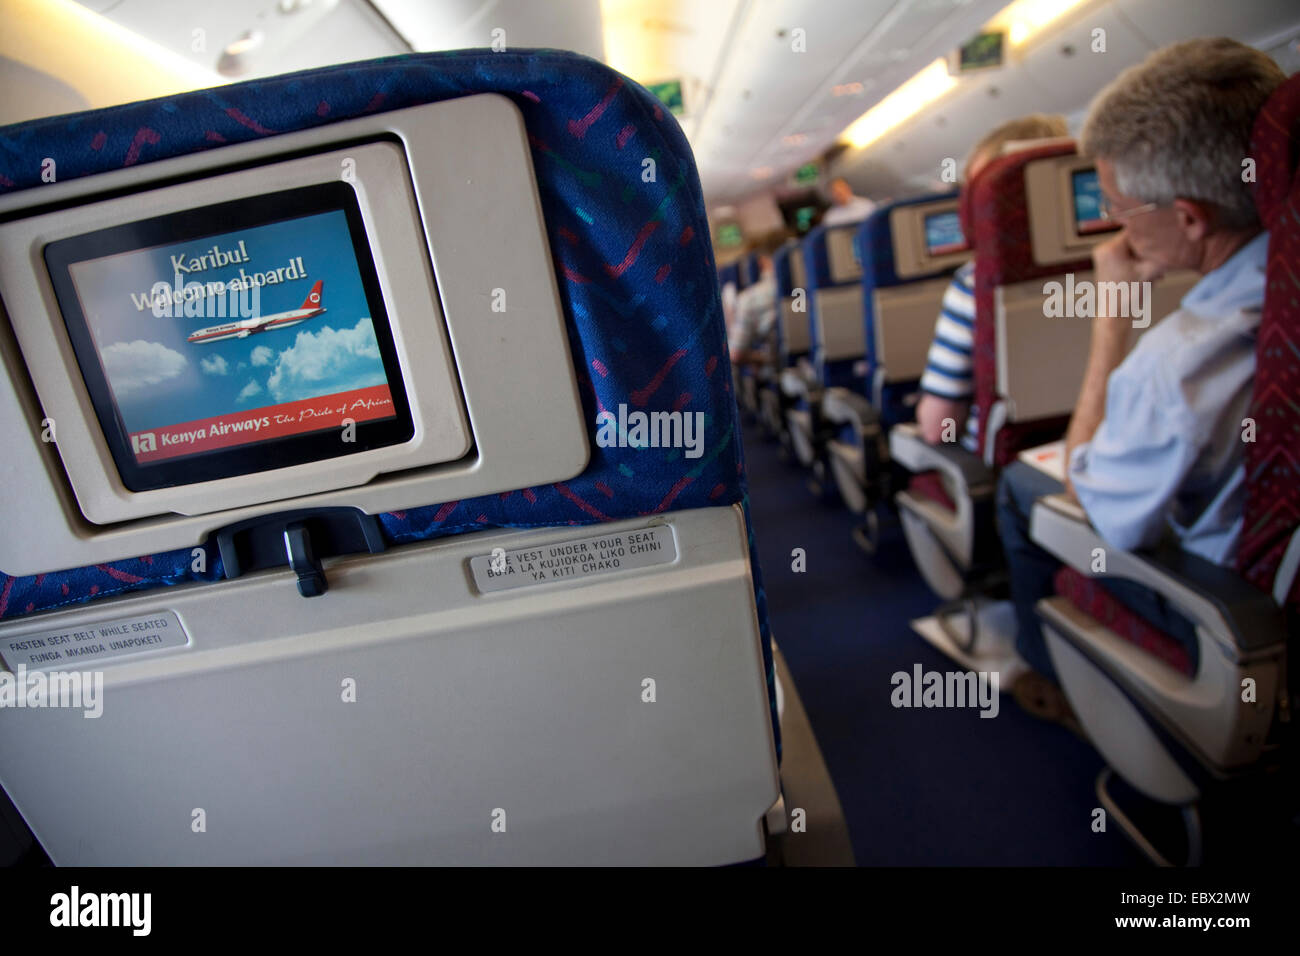 row of seats and passengers in an airplane, Kenya, Nairobi - Stock Image